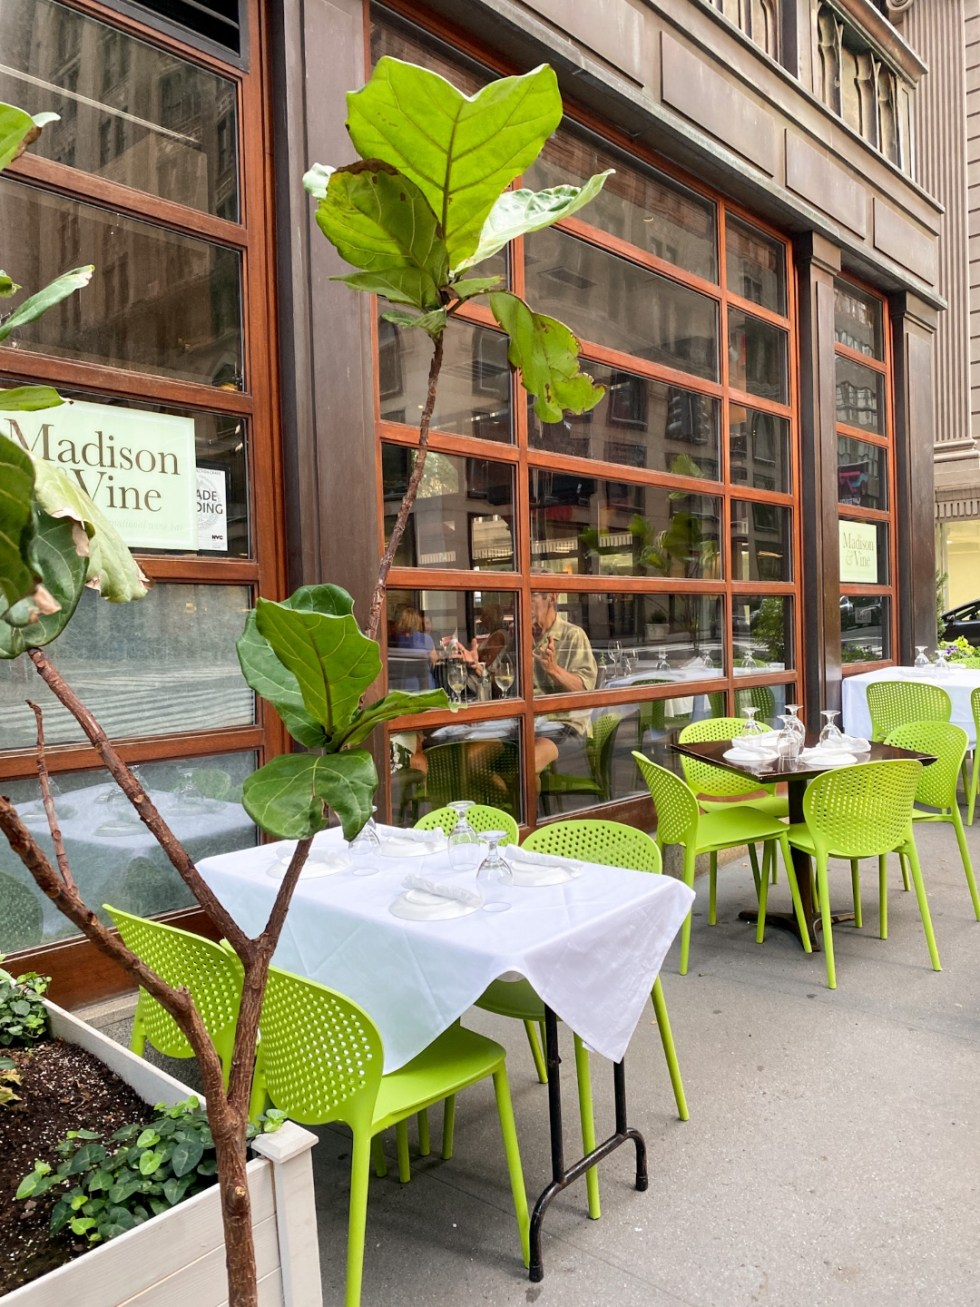 NYC Summer Weekend: Things to Do in NYC in the Summer - I'm Fixin' To - @imfixintoblog   NYC Summer Weekend by popular NC travel blog, I'm Fixin' To: image of outdoor seating at Madison and Vine.